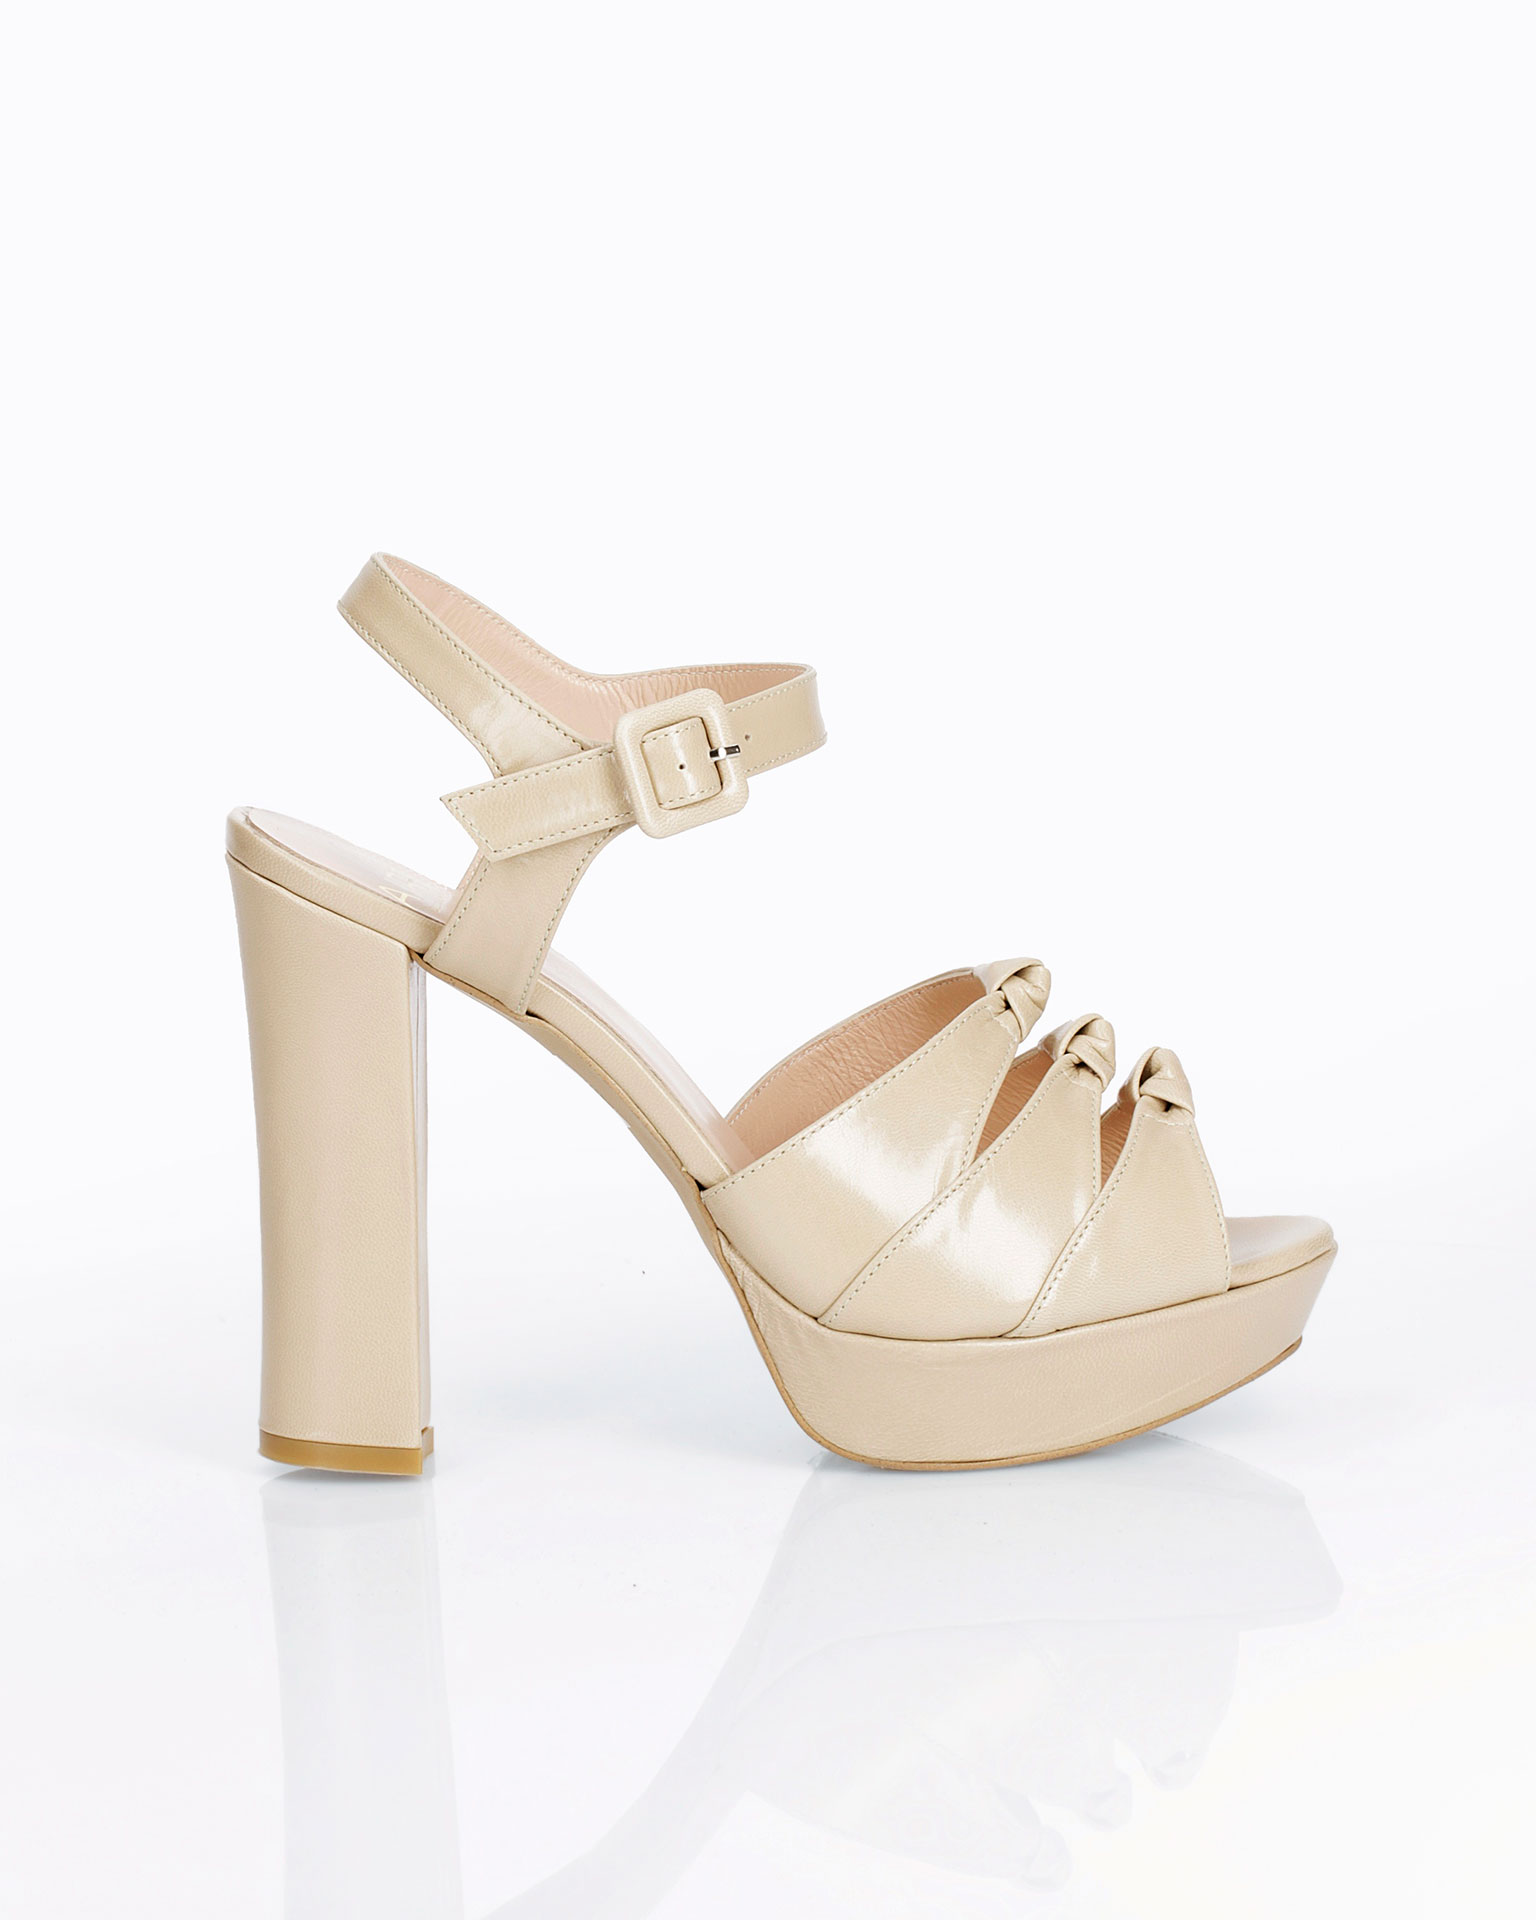 Leather bridal shoe. With high heel and instep with knot detail. Available in natural and camel. 2019 AIRE BARCELONA Collection.